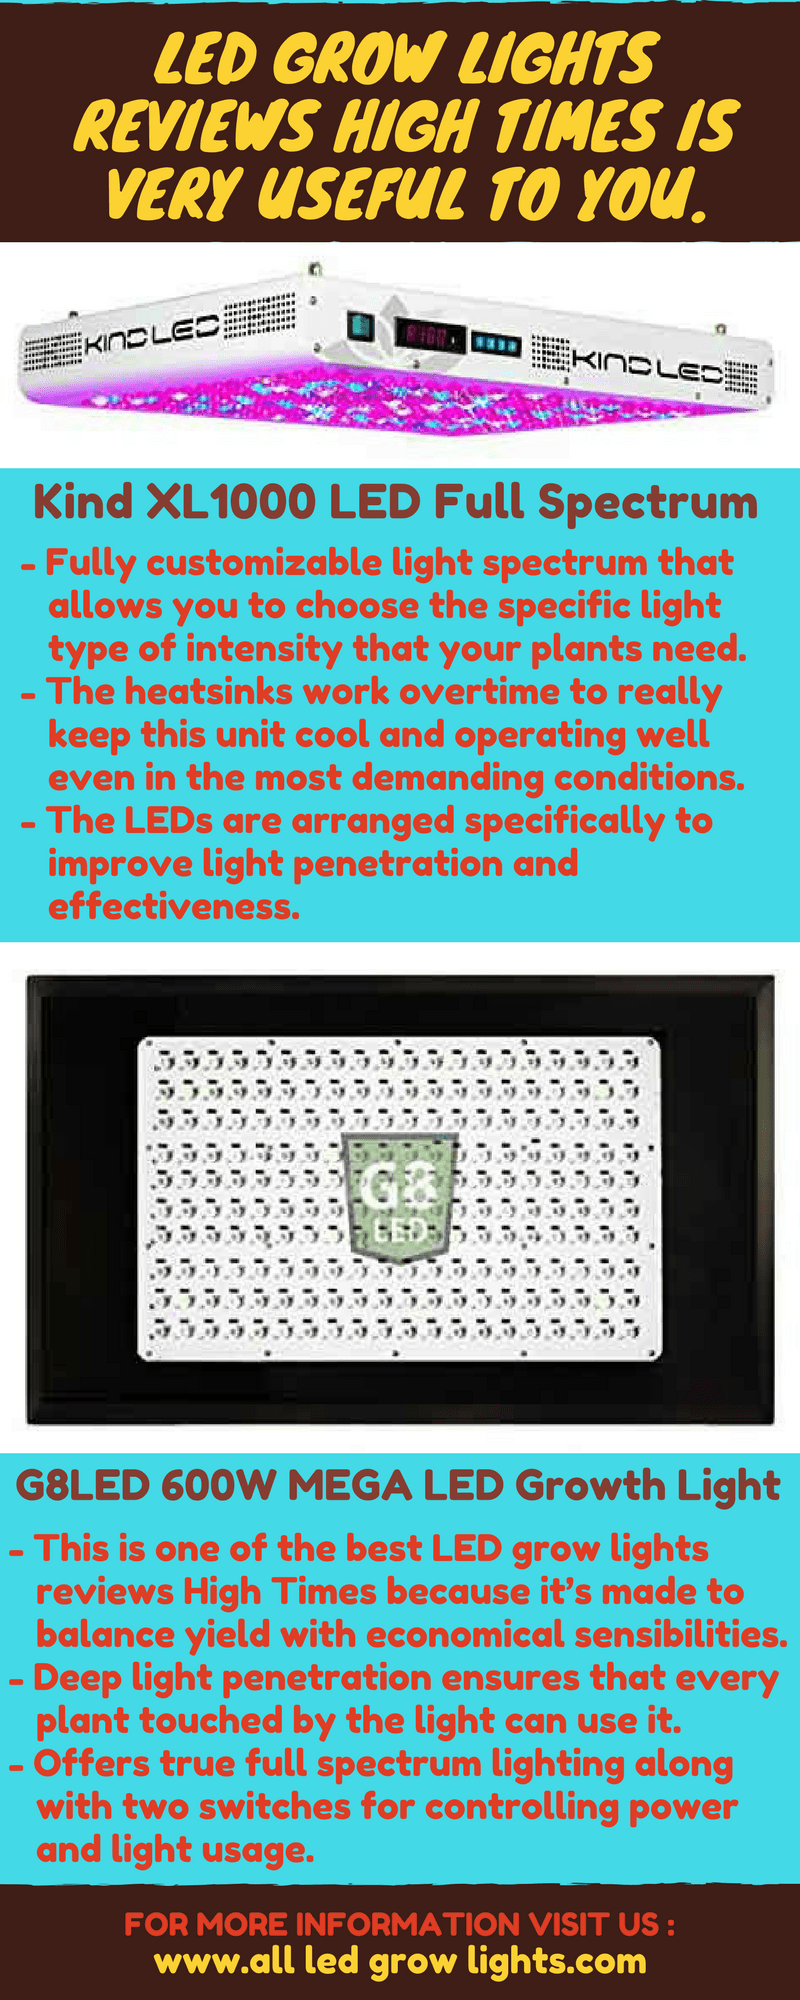 LED Grow Lights Reviews High Times is Very Useful To You